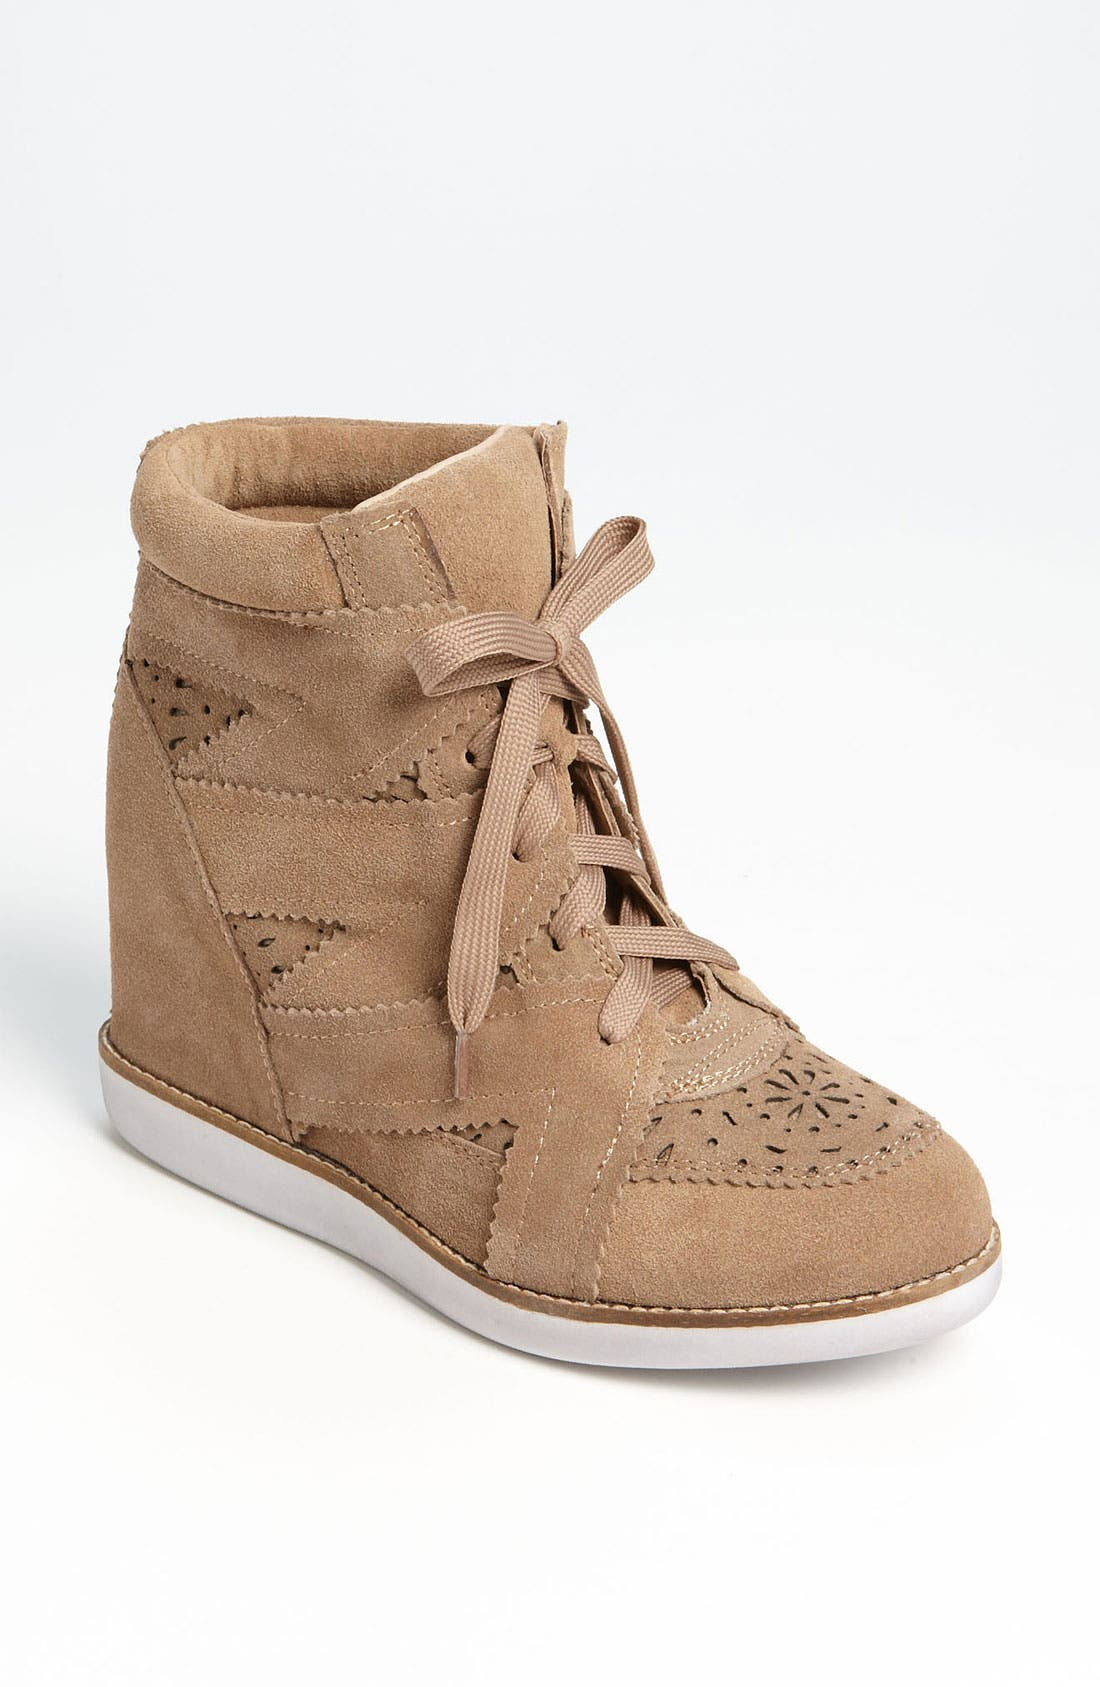 Alternate Image 1 Selected - Jeffrey Campbell 'Venice-Hi' Wedge Sneaker